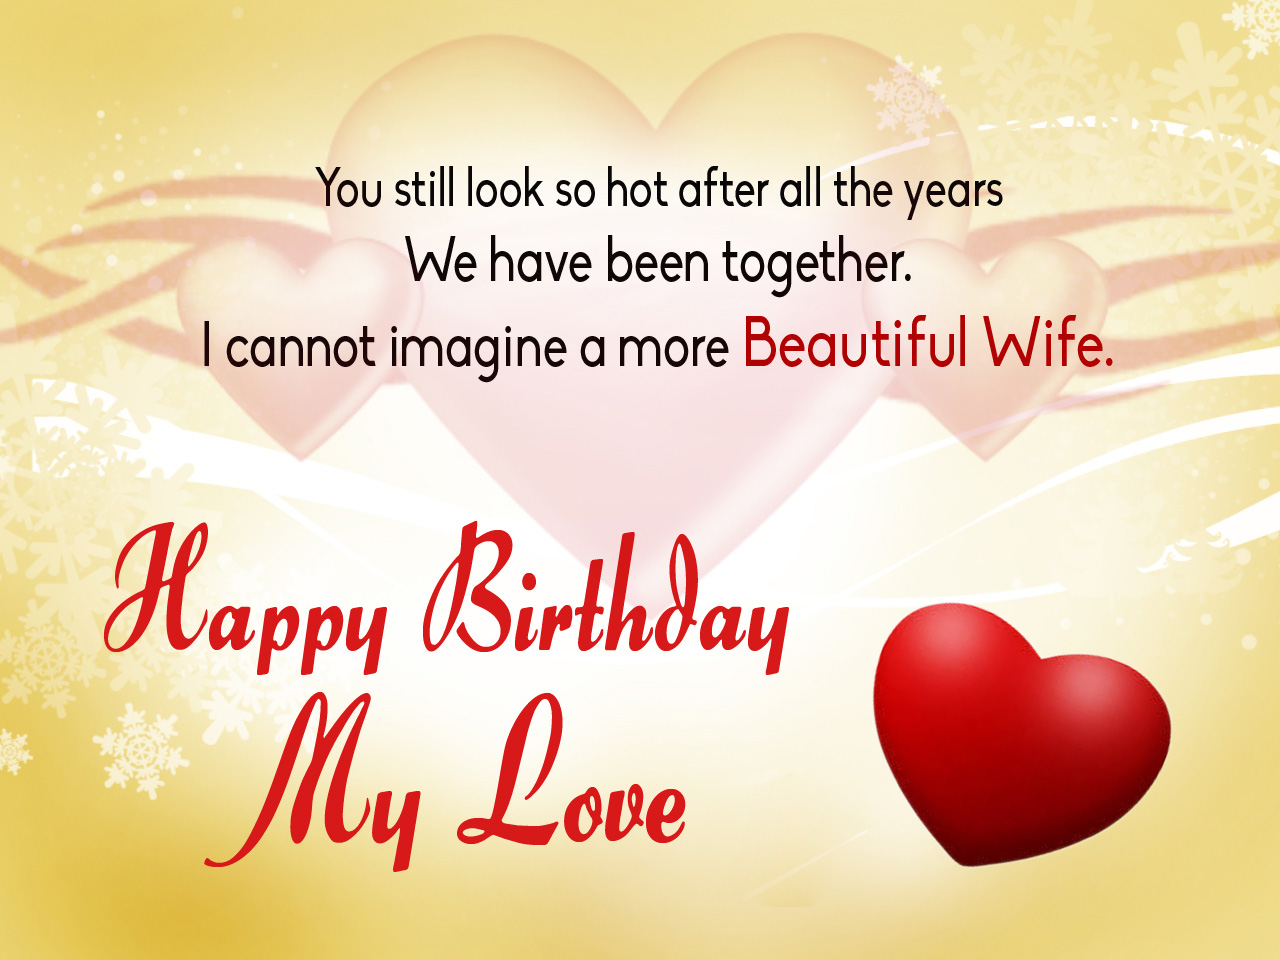 Wife Birthday Card Happy Wishes Memes SMS Greeting ECard Images